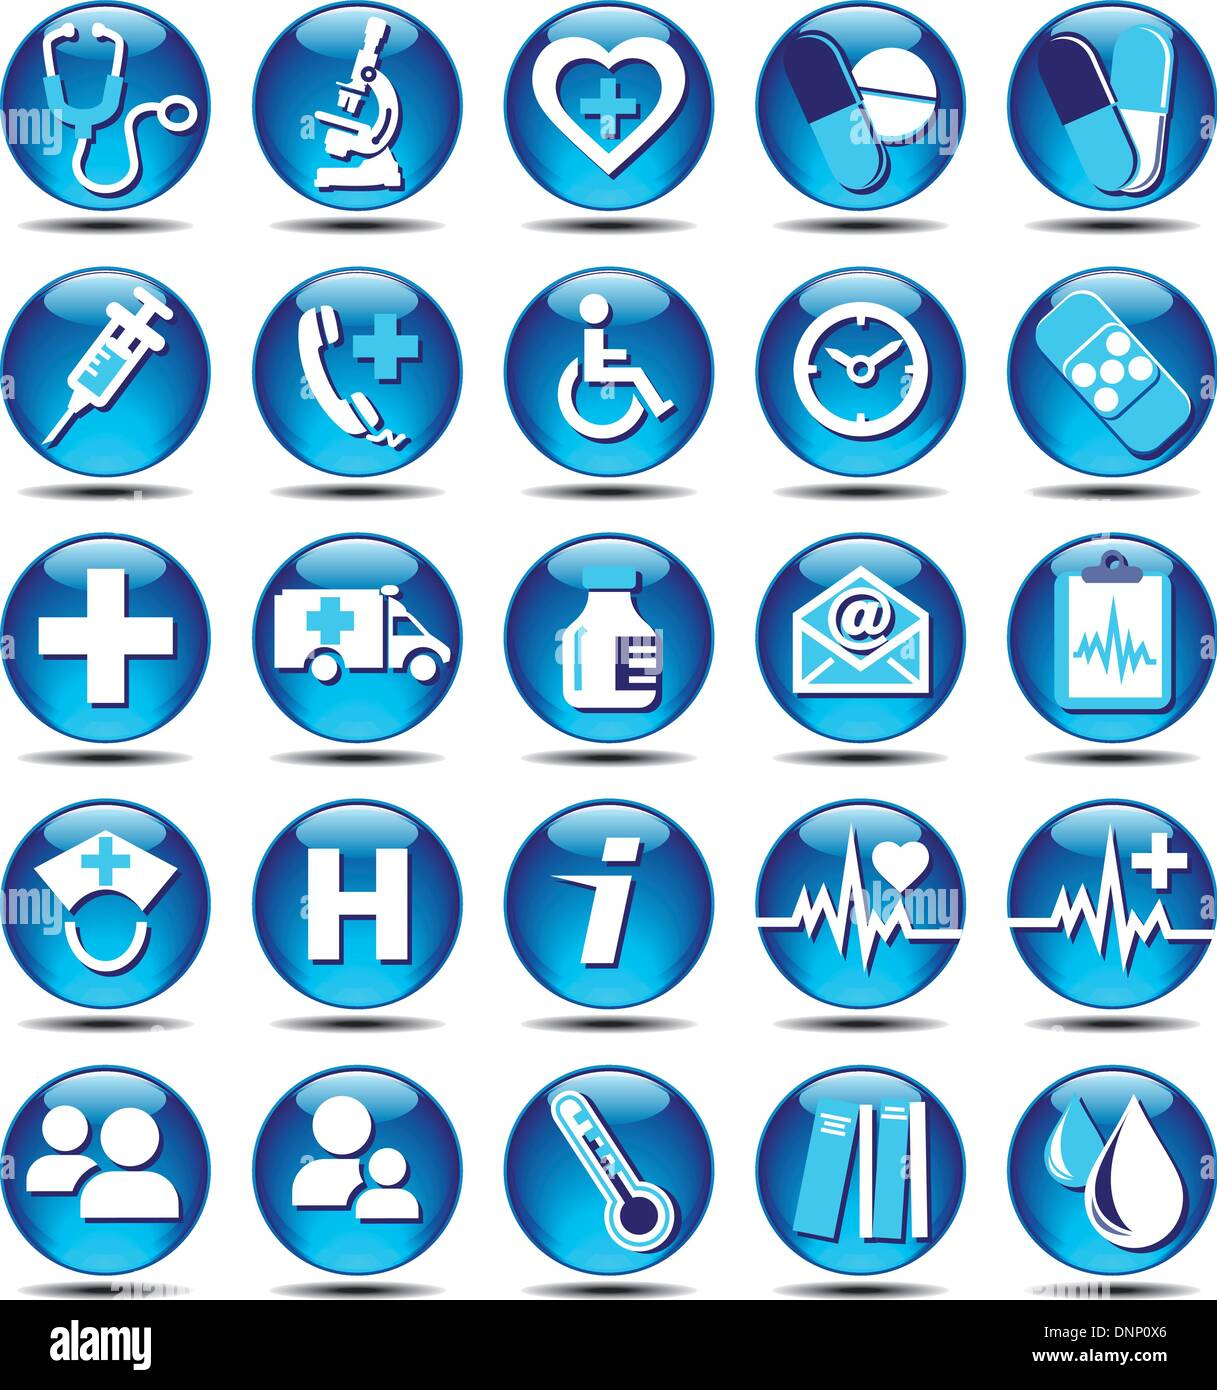 Healthcare Pharma icons symbol presentations icon health medical patient hospital care healthcare doctor pharmacy medicare nhs - Stock Vector